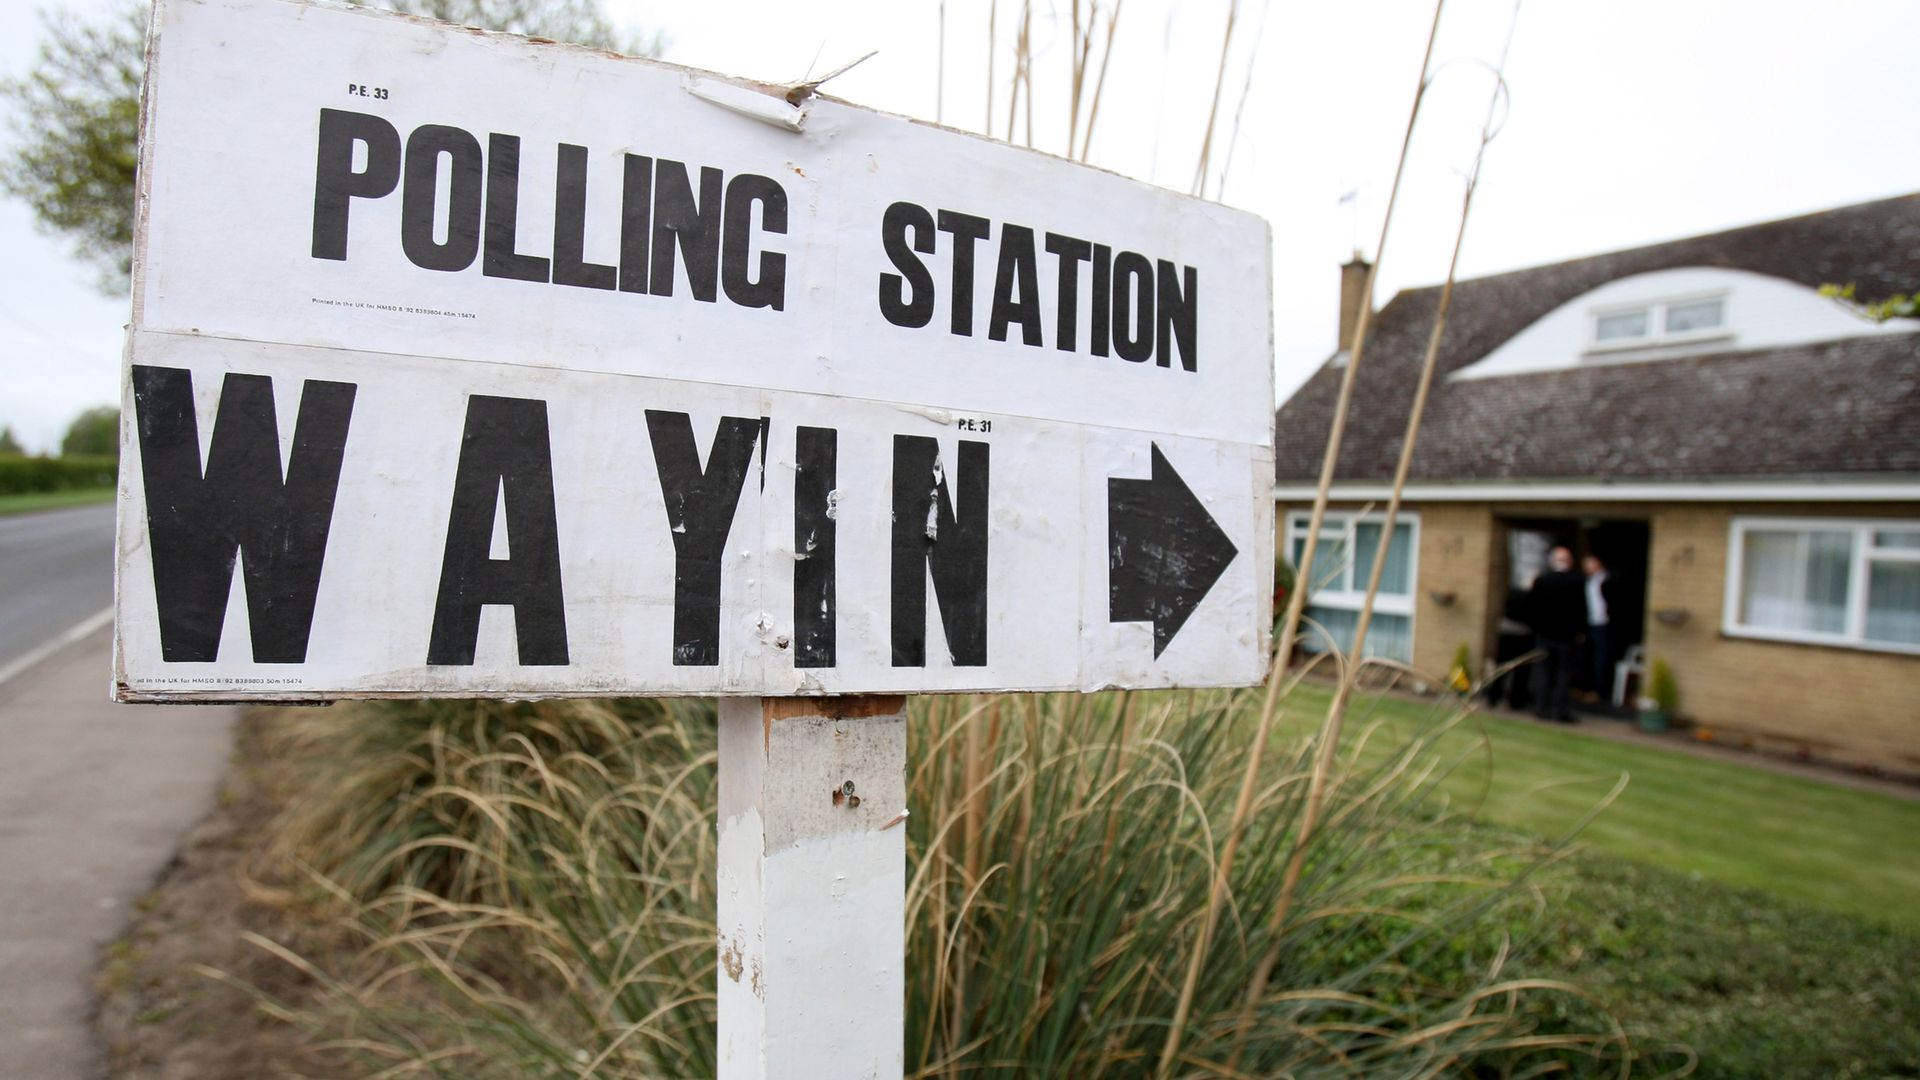 The Bungalow, in Chettisham, Ely, Cambridgeshire where voting was under way on Thursday at one of the UK's most homely polling stations. - Credit: PA